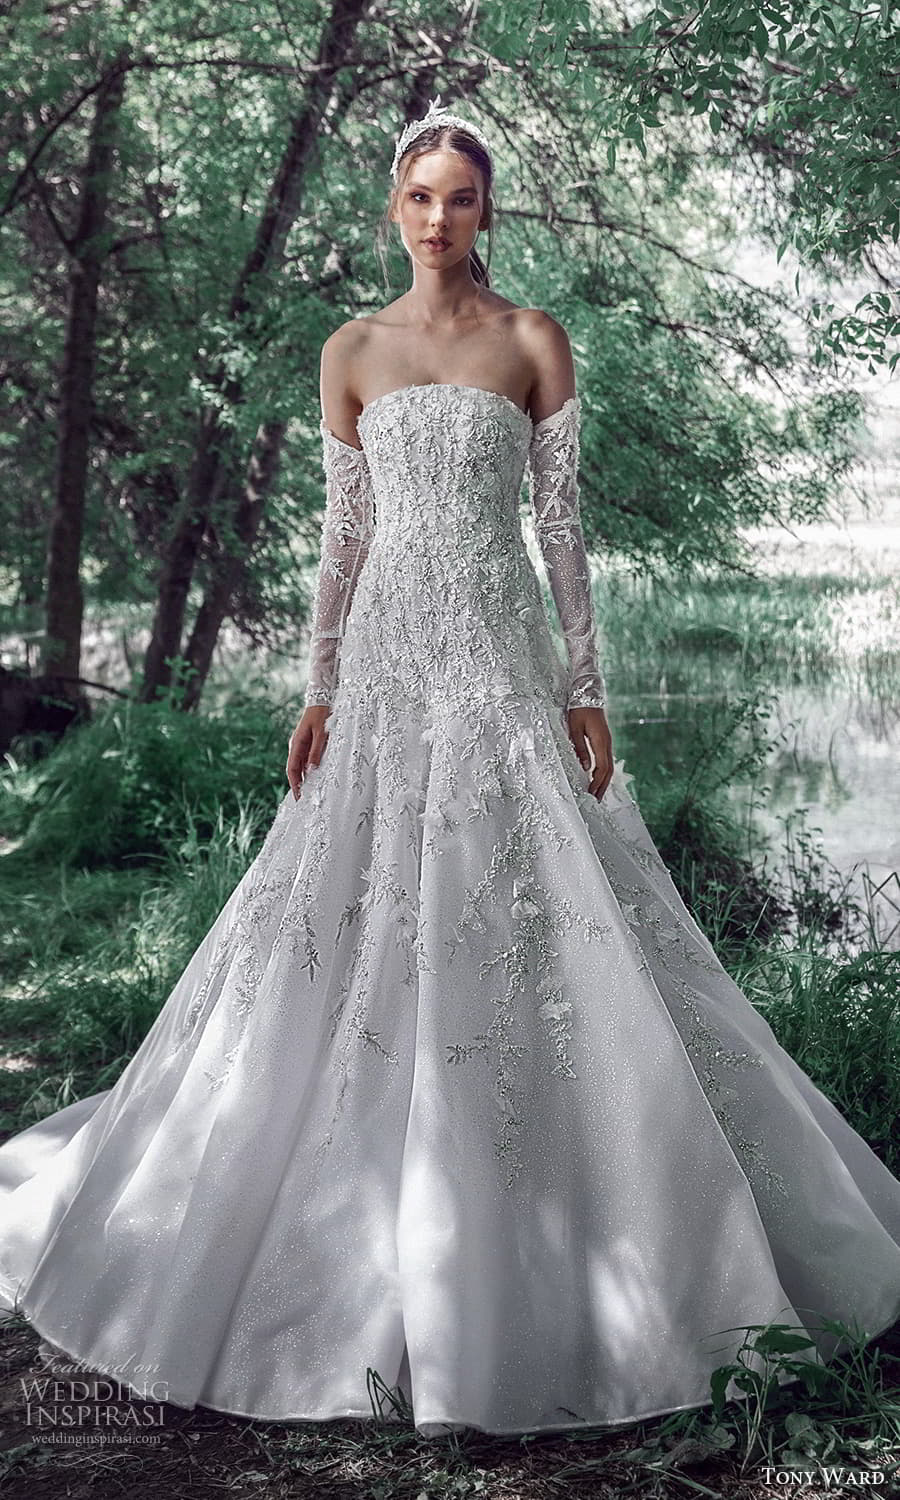 tony ward spring 2022 bridal detached long sleeves strapless curved neckline fully embellished trumpet modified a line wedding dress chapel train (13) mv